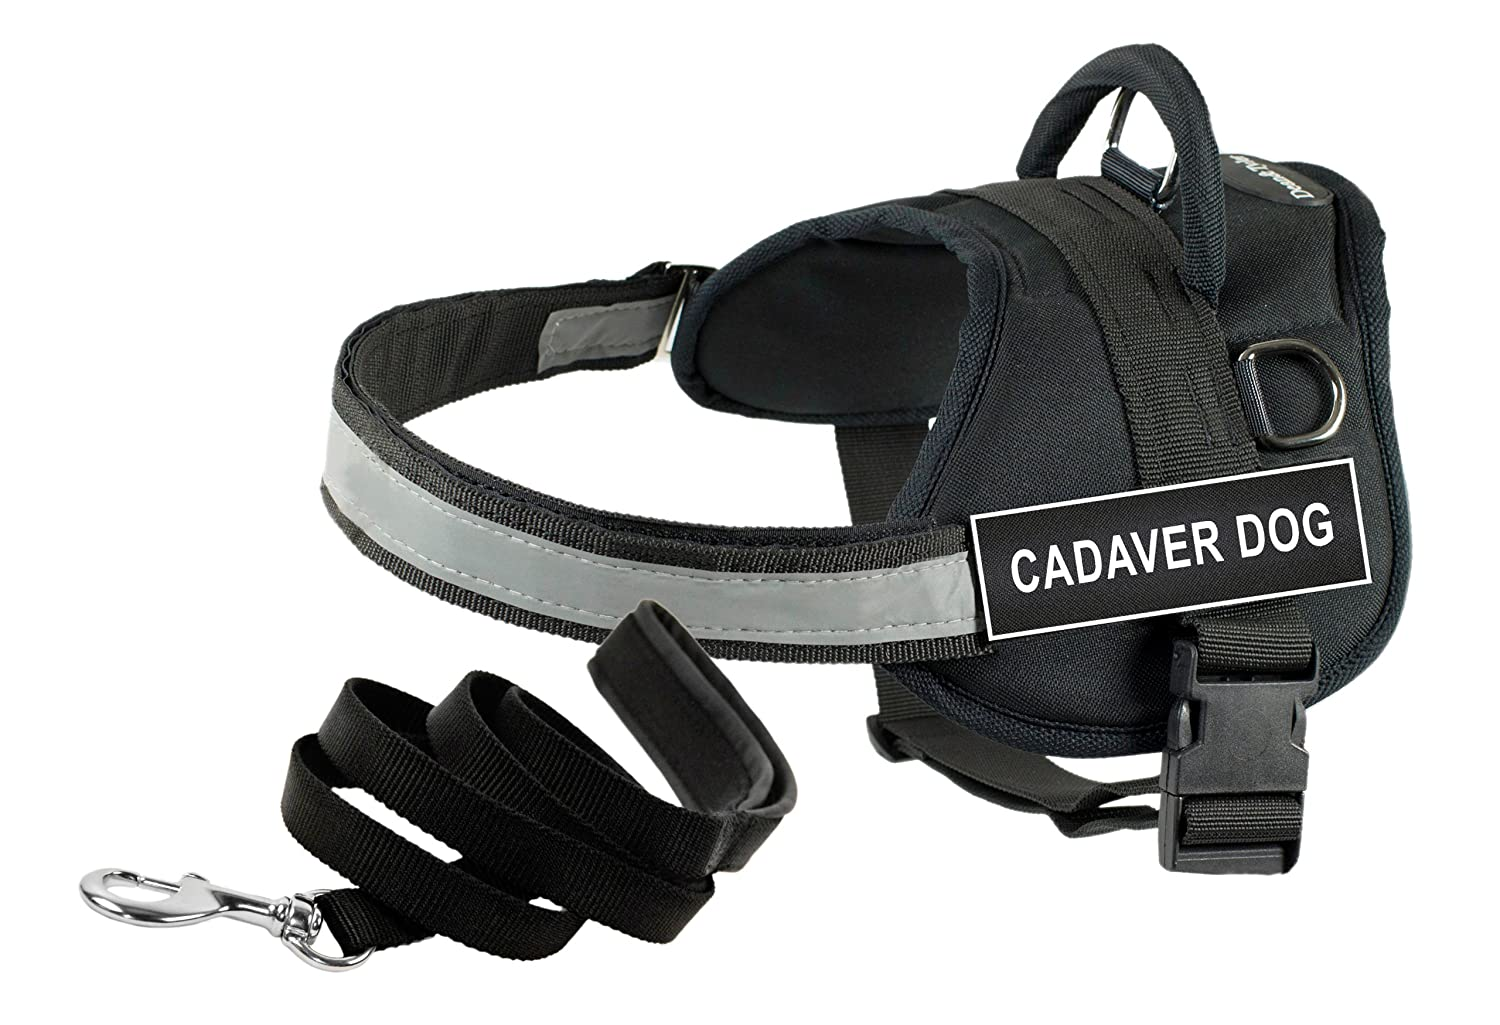 Dean & Tyler's DT Works CADAVER DOG Harness, Small, with 6 ft Padded Puppy Leash.